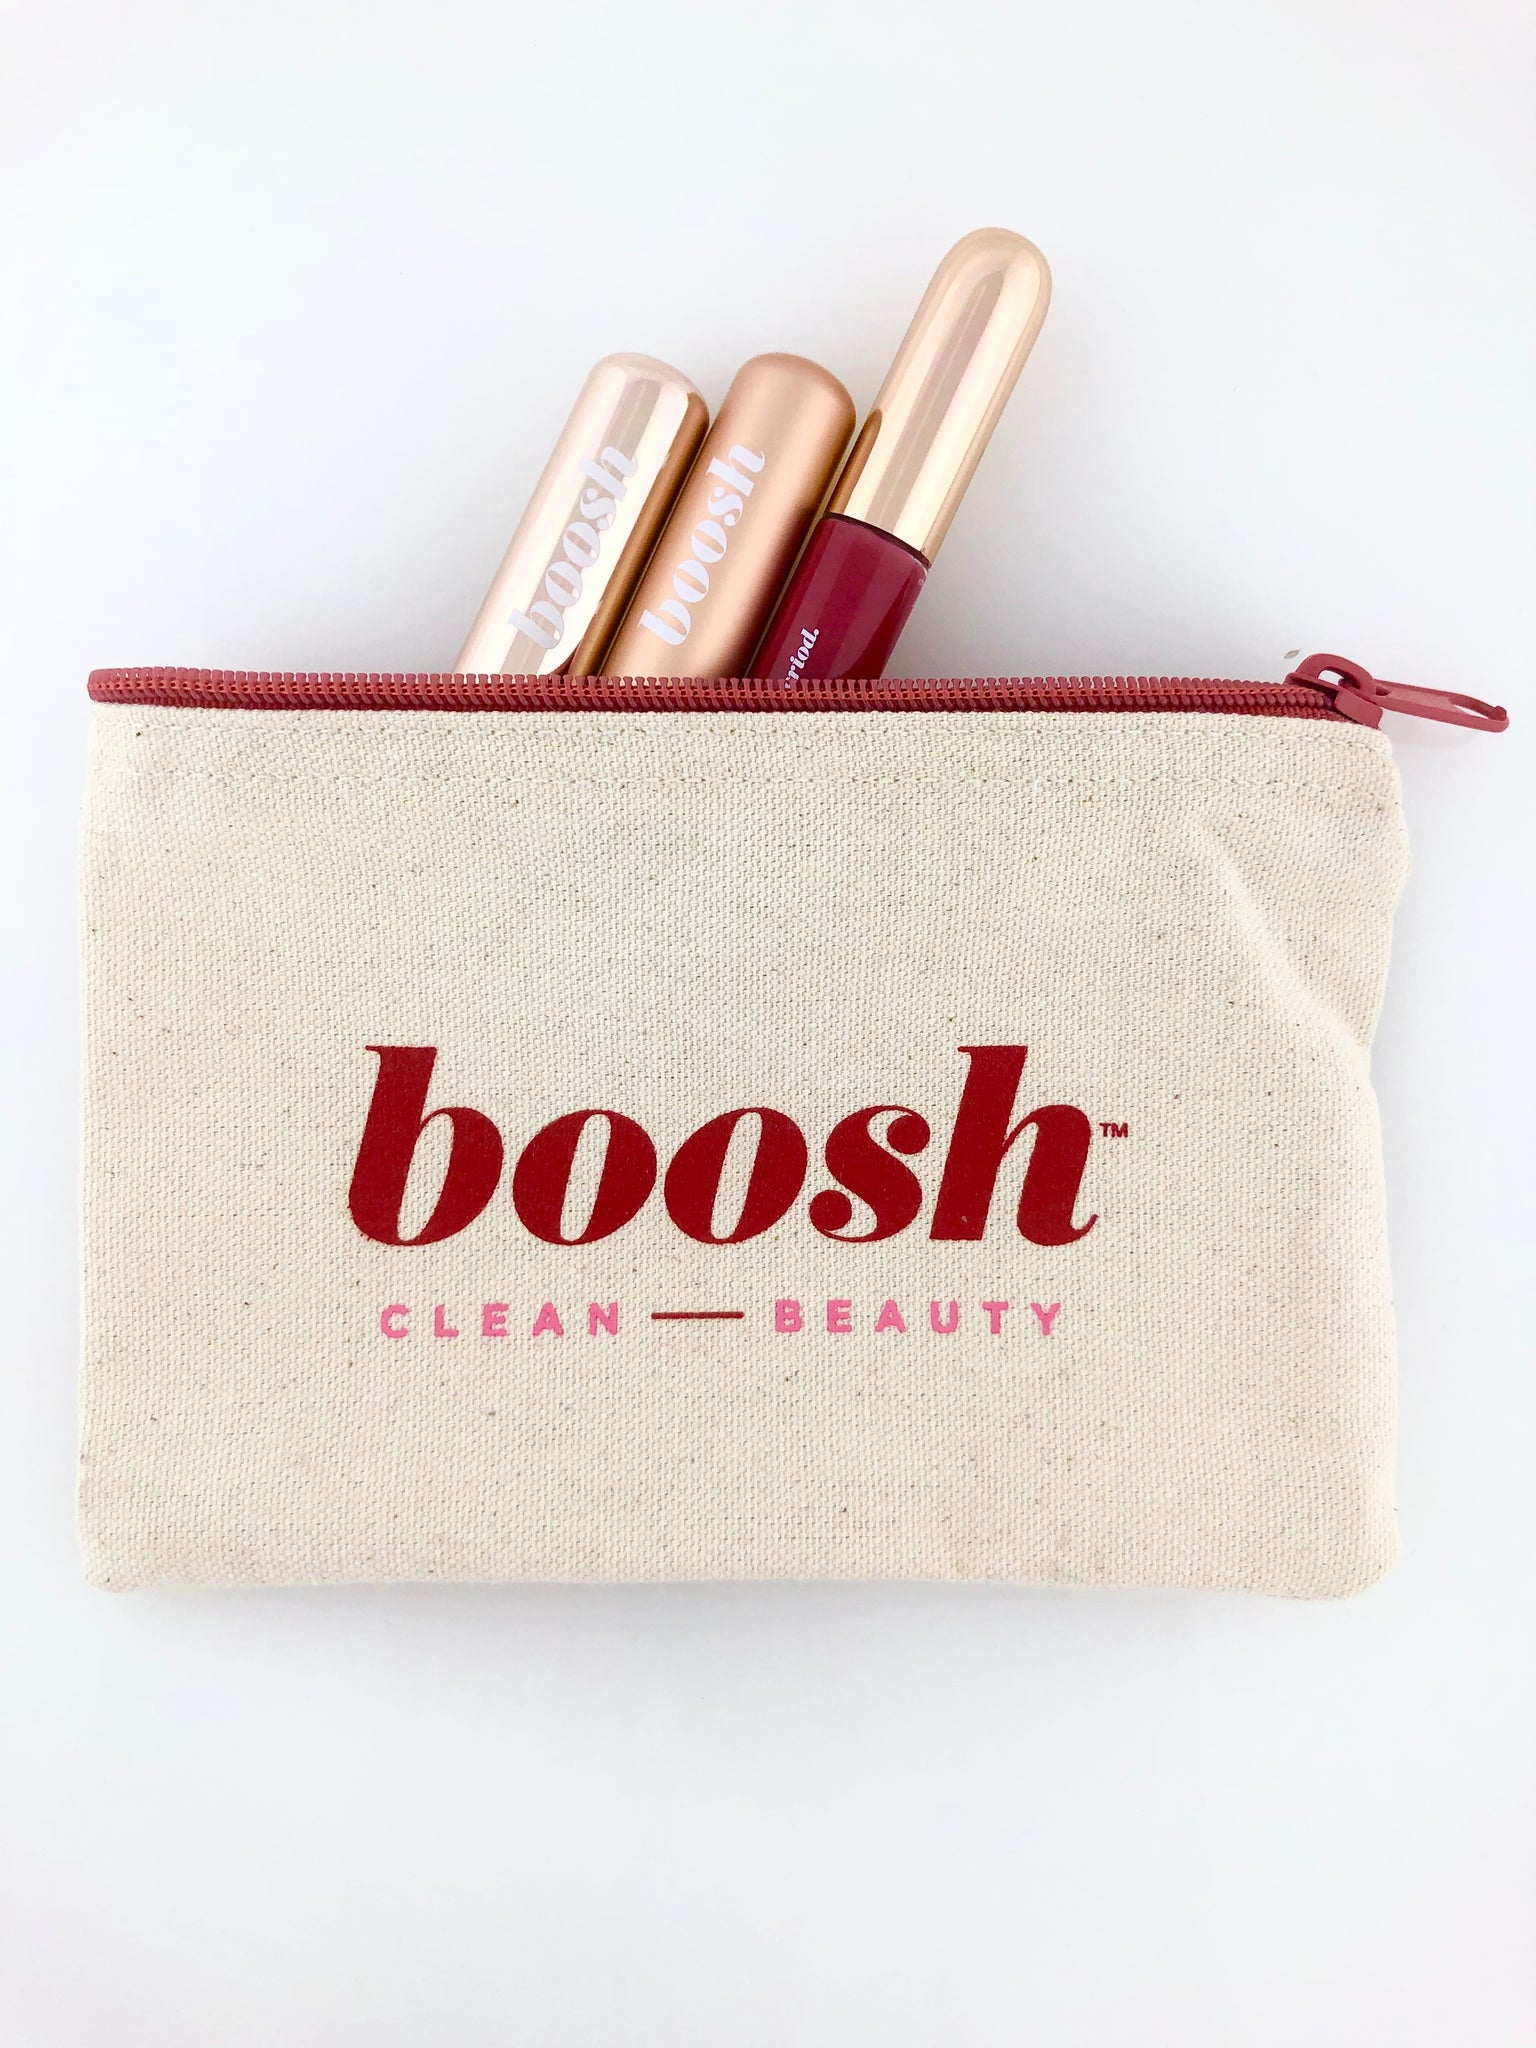 LIMITED EDITION boosh MAKEUP BAG